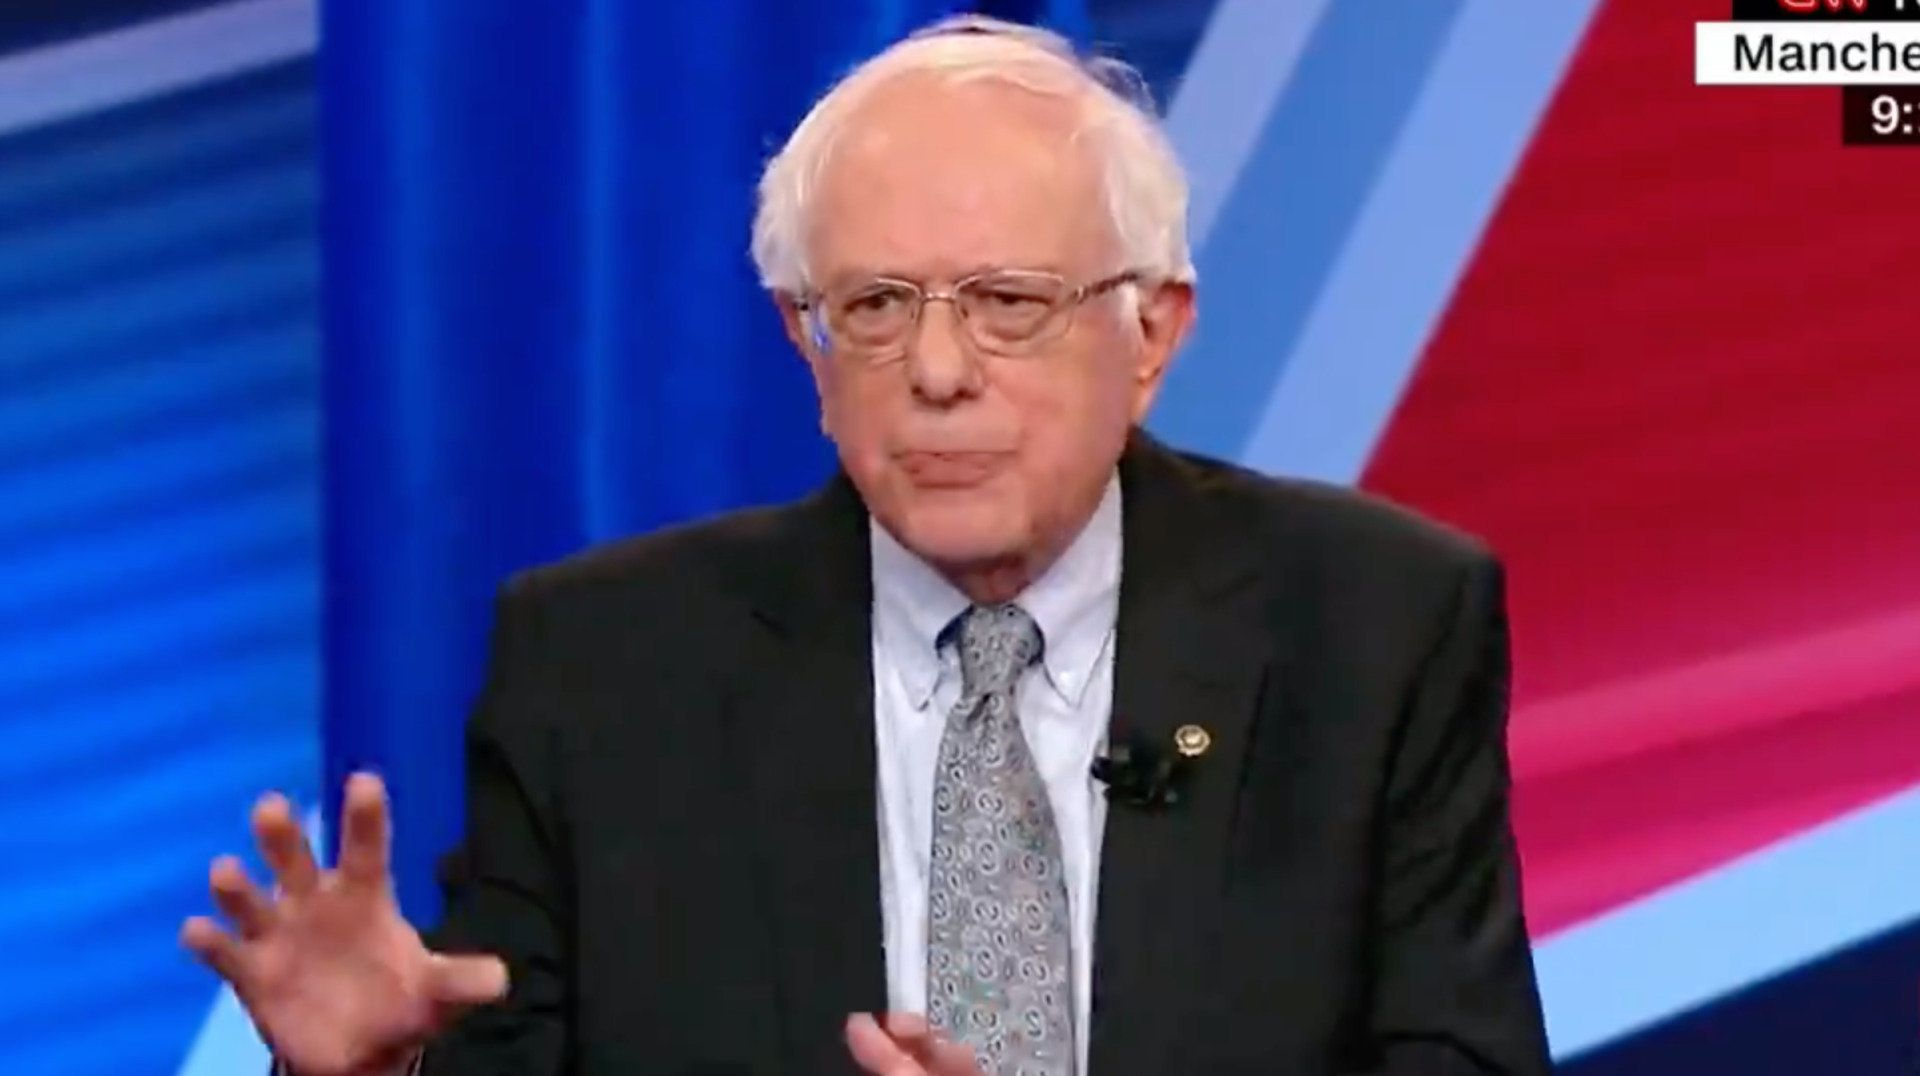 Sen. Bernie Sanders (I-Vt.) declined to support any potential impeachmentproceedings against President Donald Trump on Monday following the release ofspecial counsel